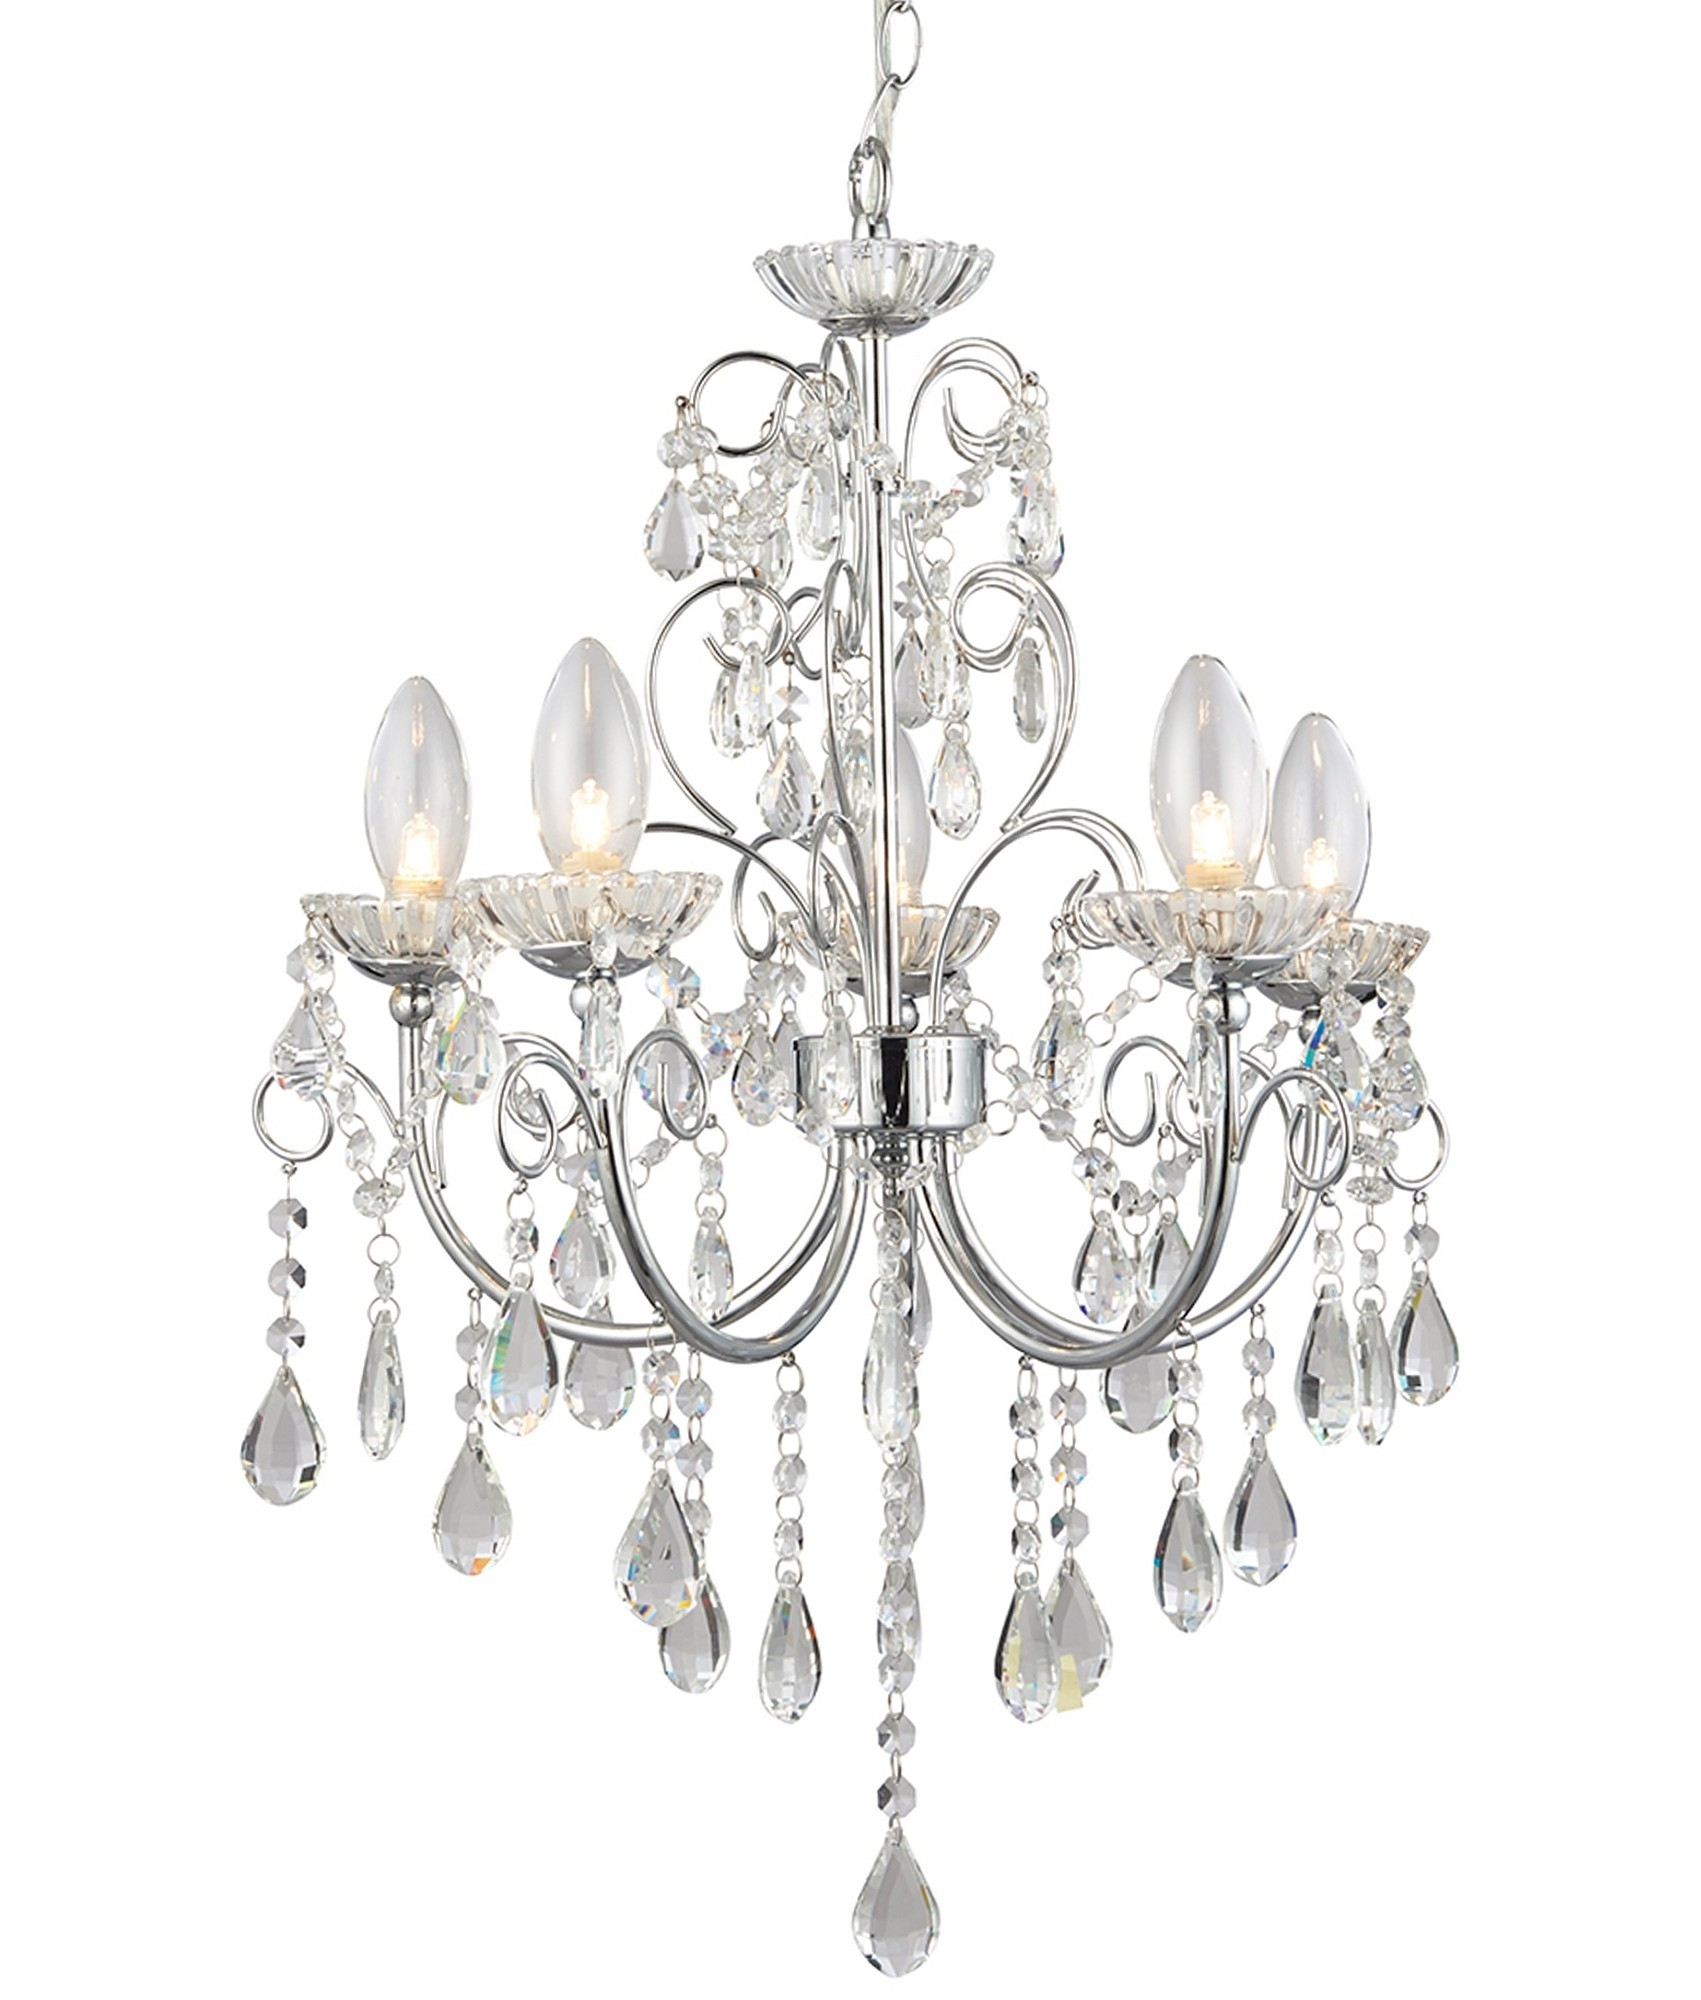 Bathroom Chandelier With Crystals Ip44